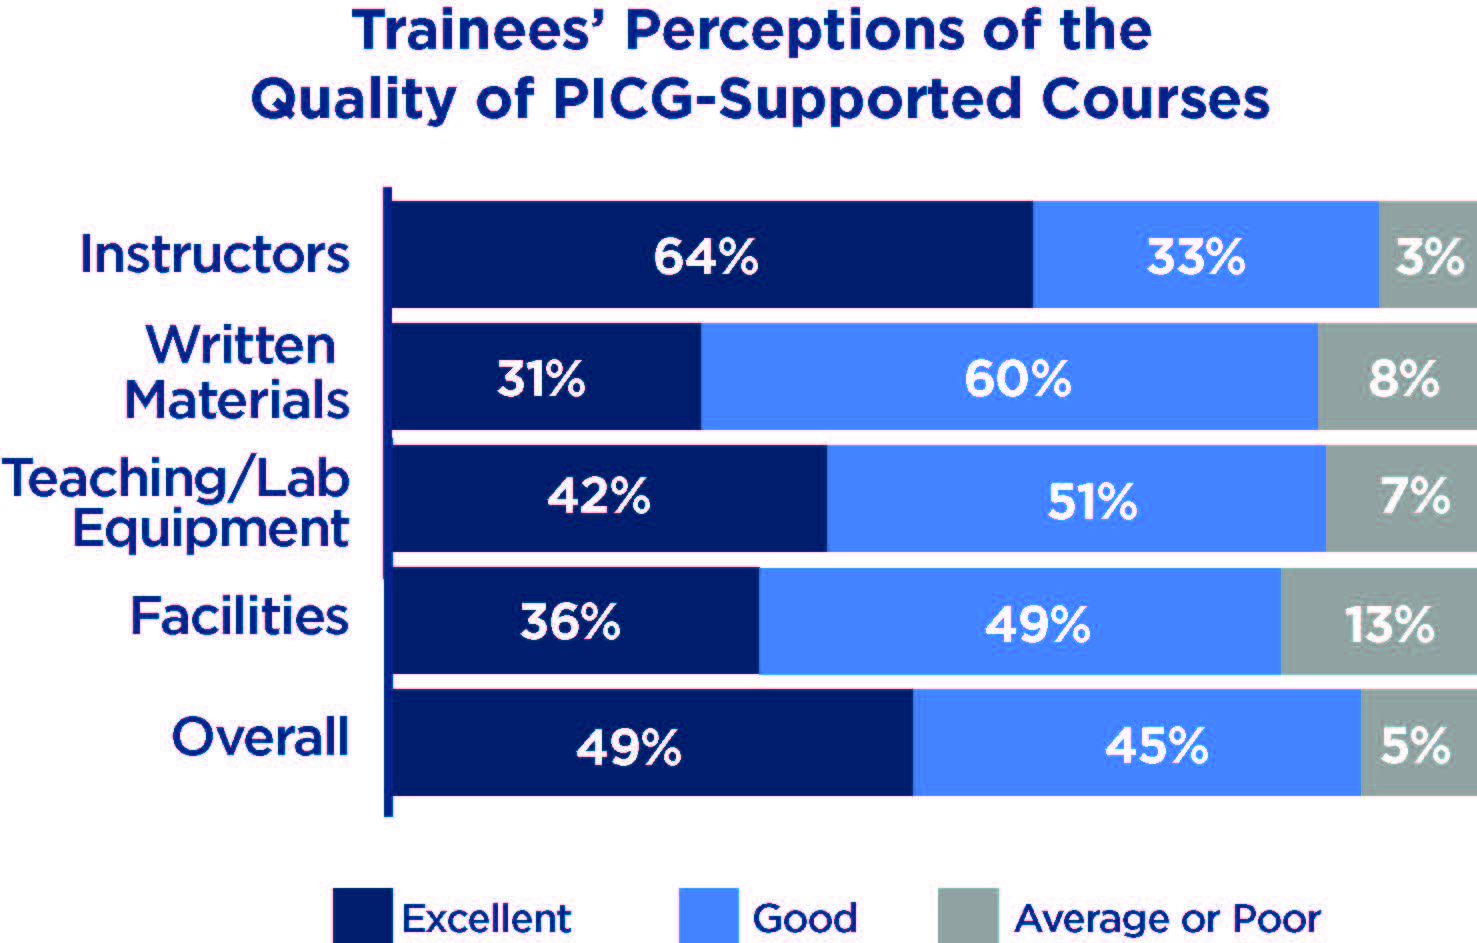 chart of trainees' perceptions of the quality of PICG-Supported courses